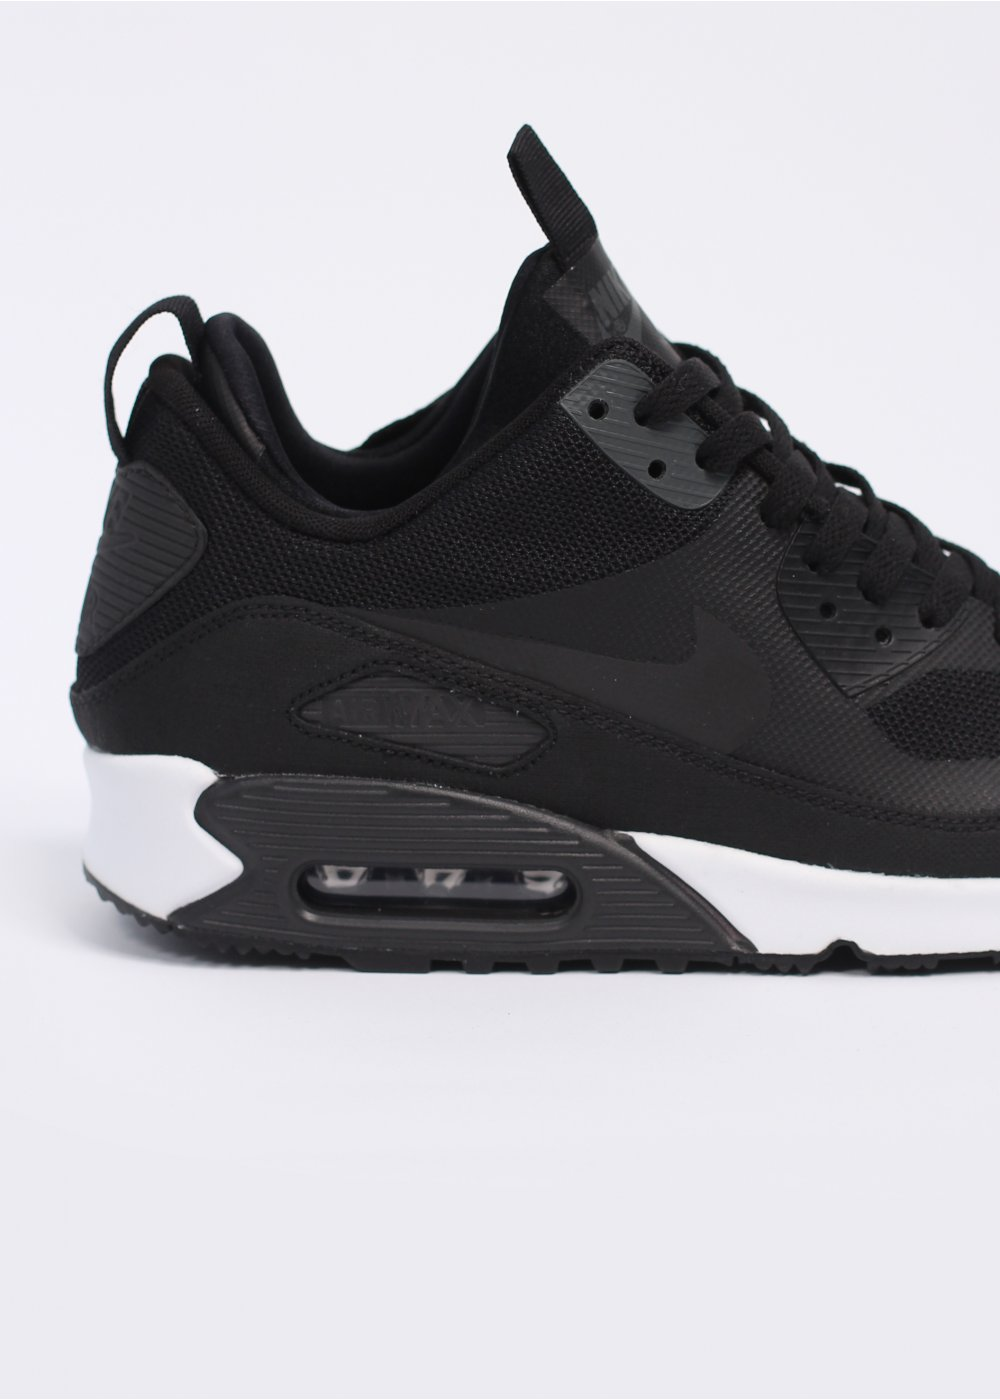 Nike Air Max 90 Sneaker Boot Black White Dark Charcoal